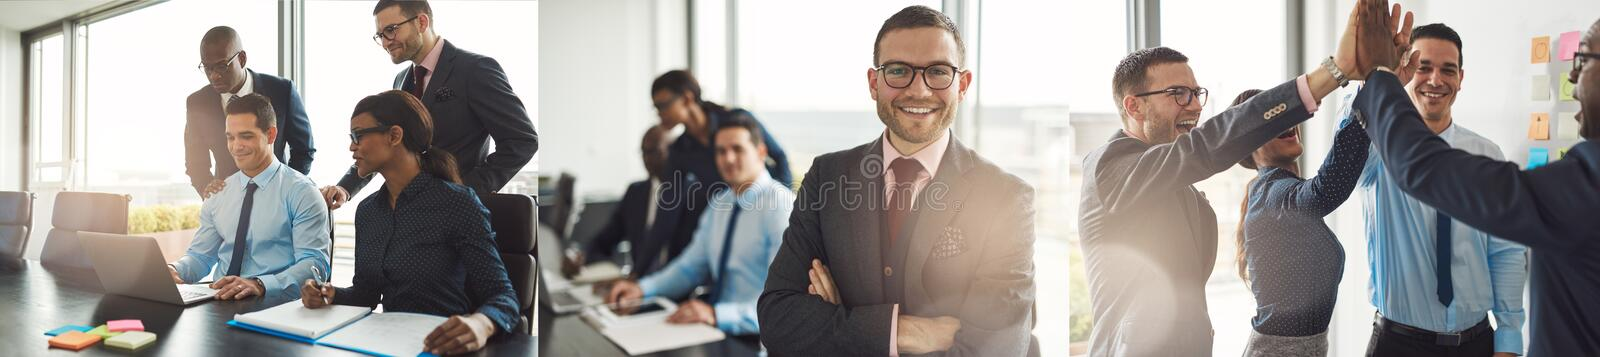 Collage of smiling businesspeople working together in an office royalty free stock photo